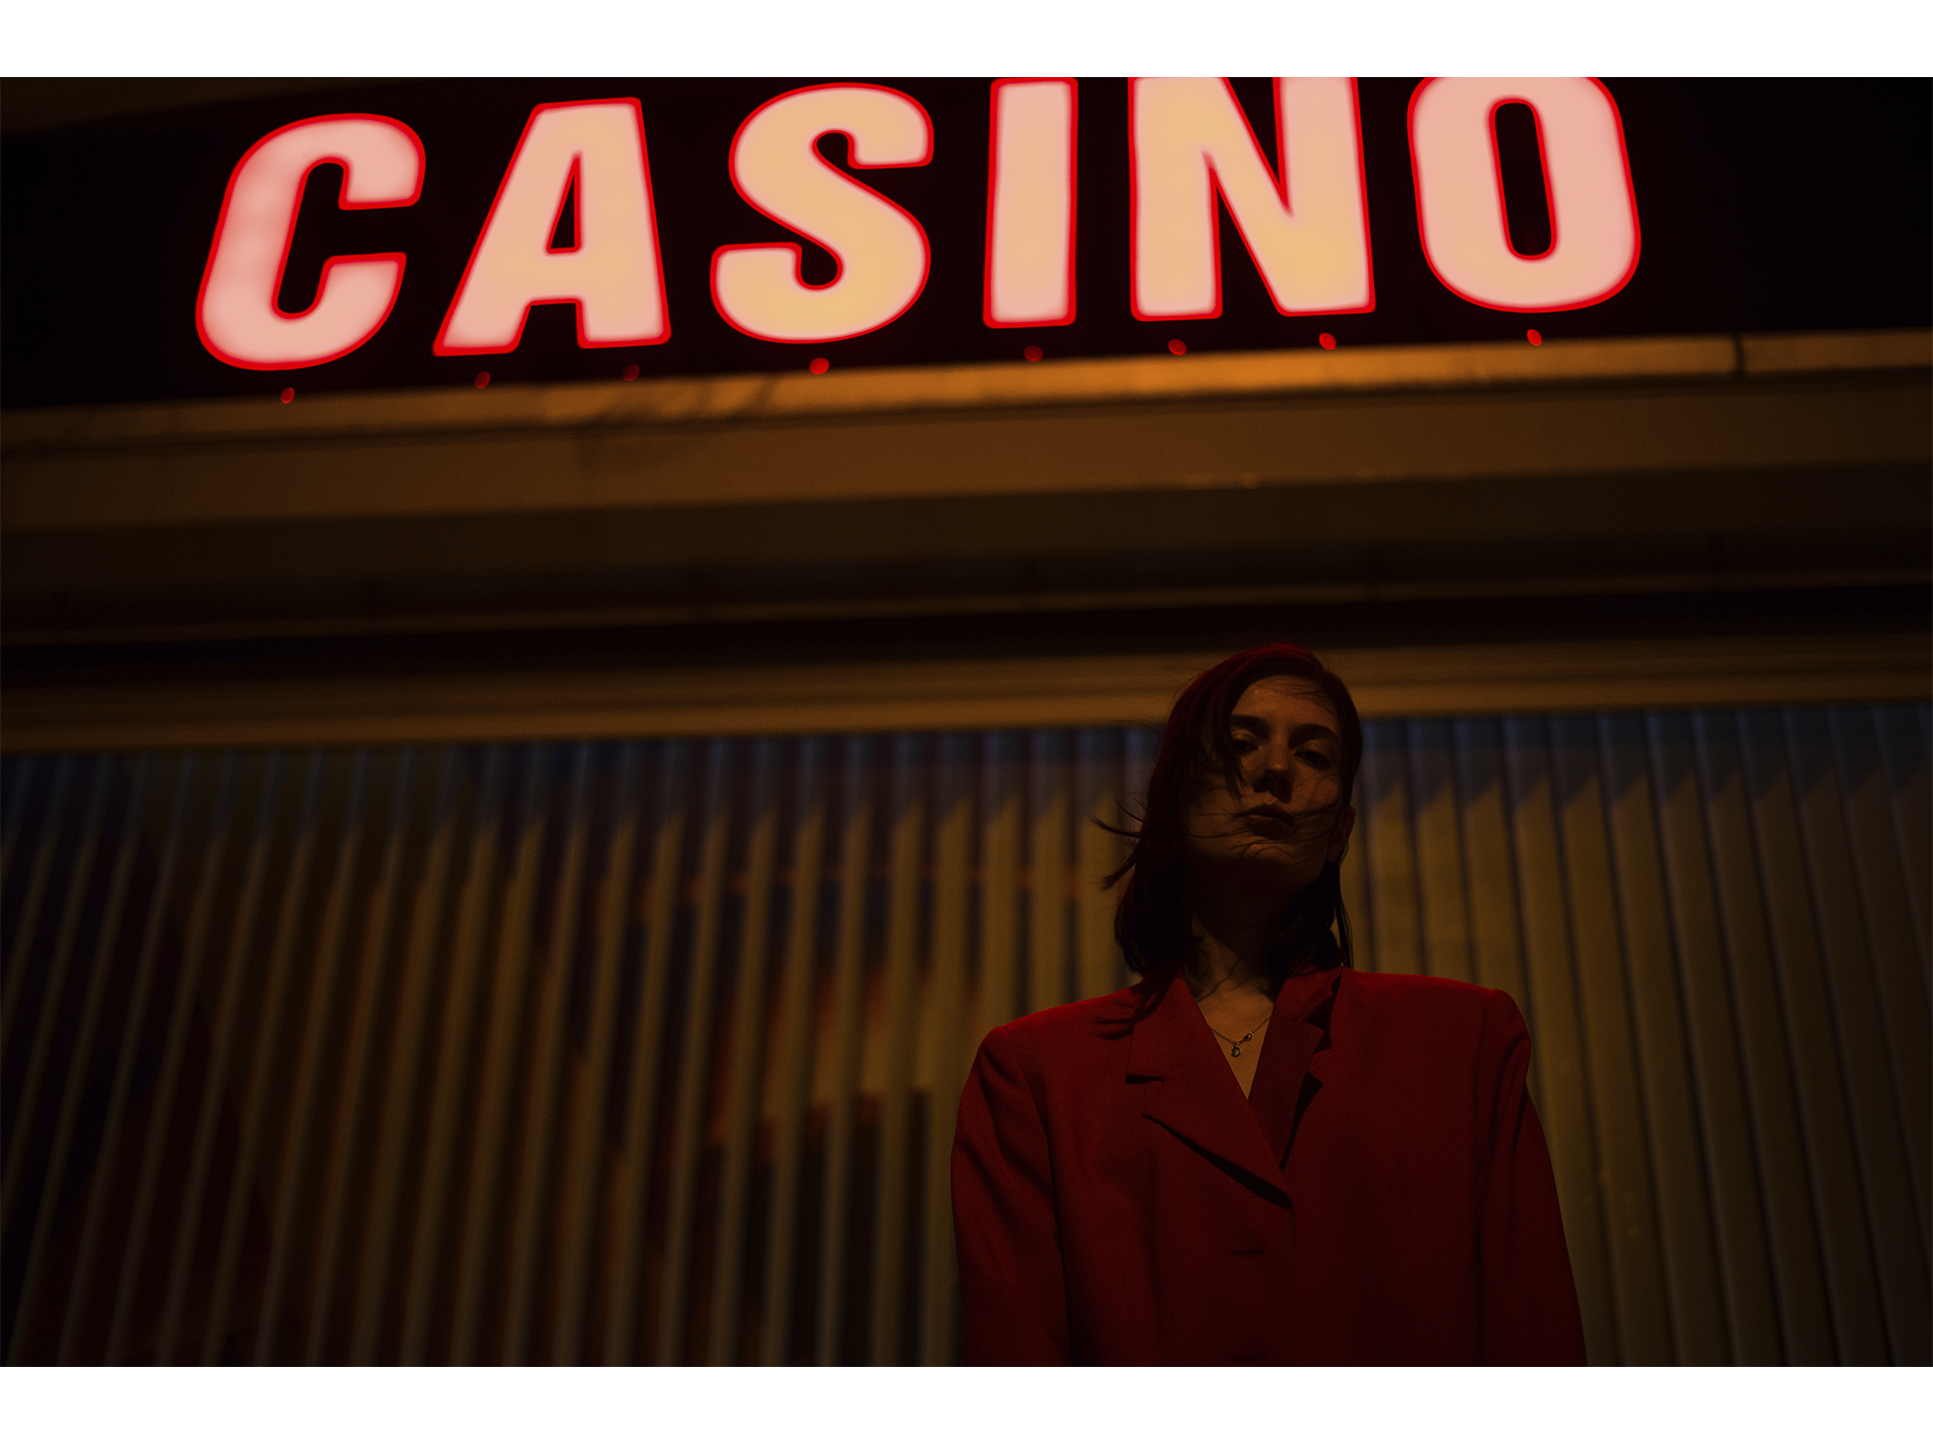 justine berlin casino daniel peace photographer photography